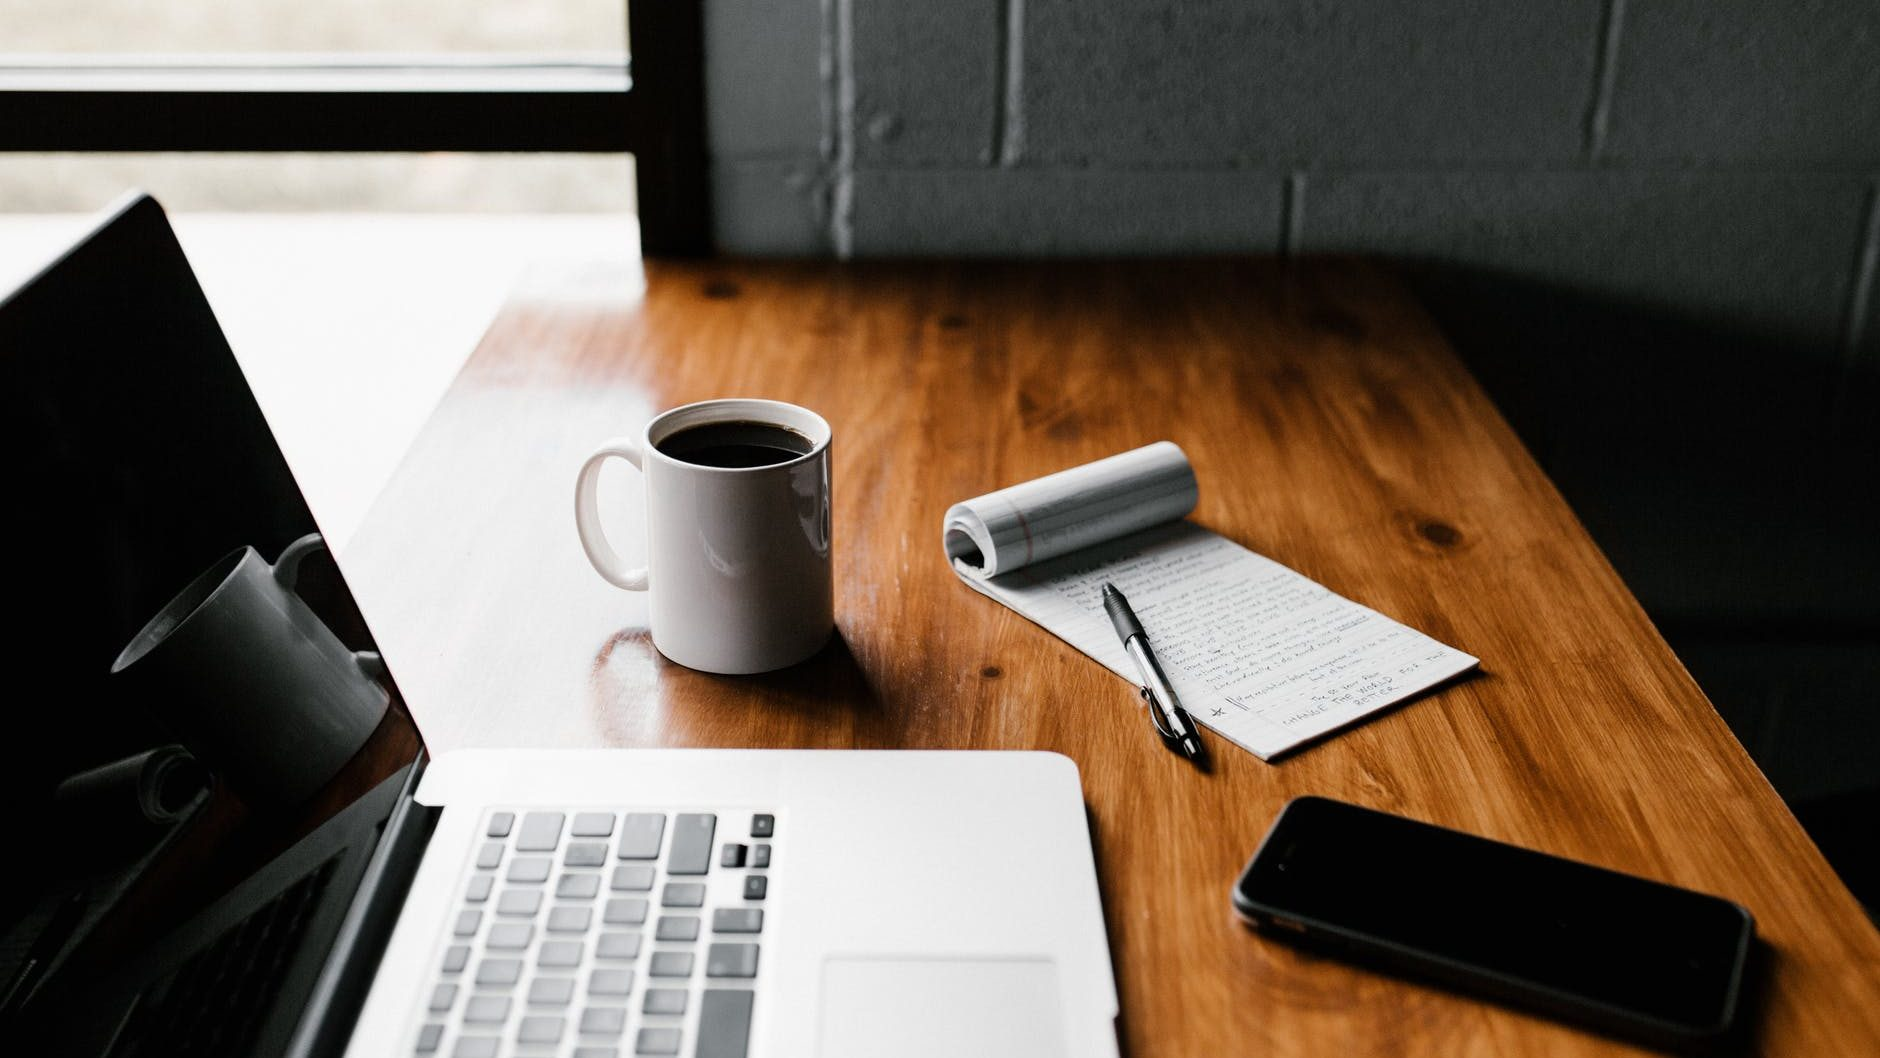 A wooden desk with a laptop, white mug full of coffee and a nitebook with a to do list